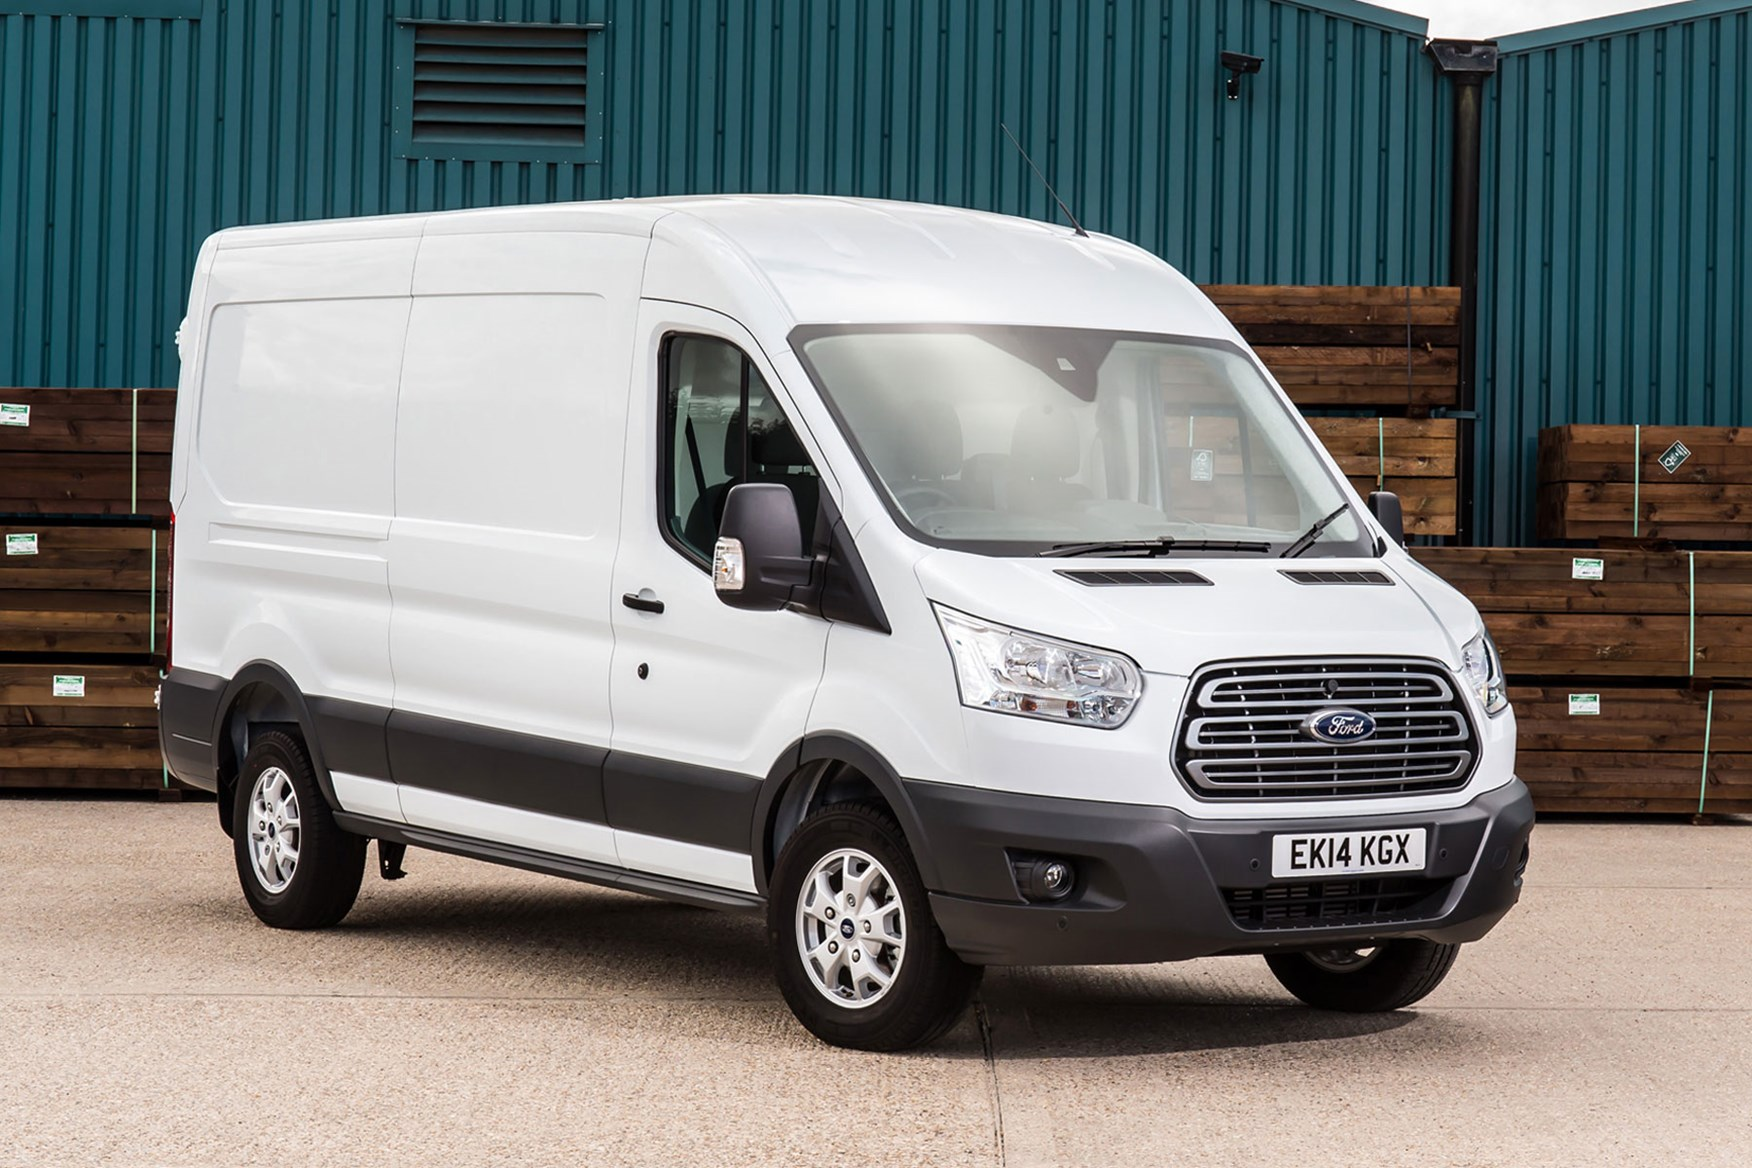 Ford Transit RWD Trend review on Parkers Vans